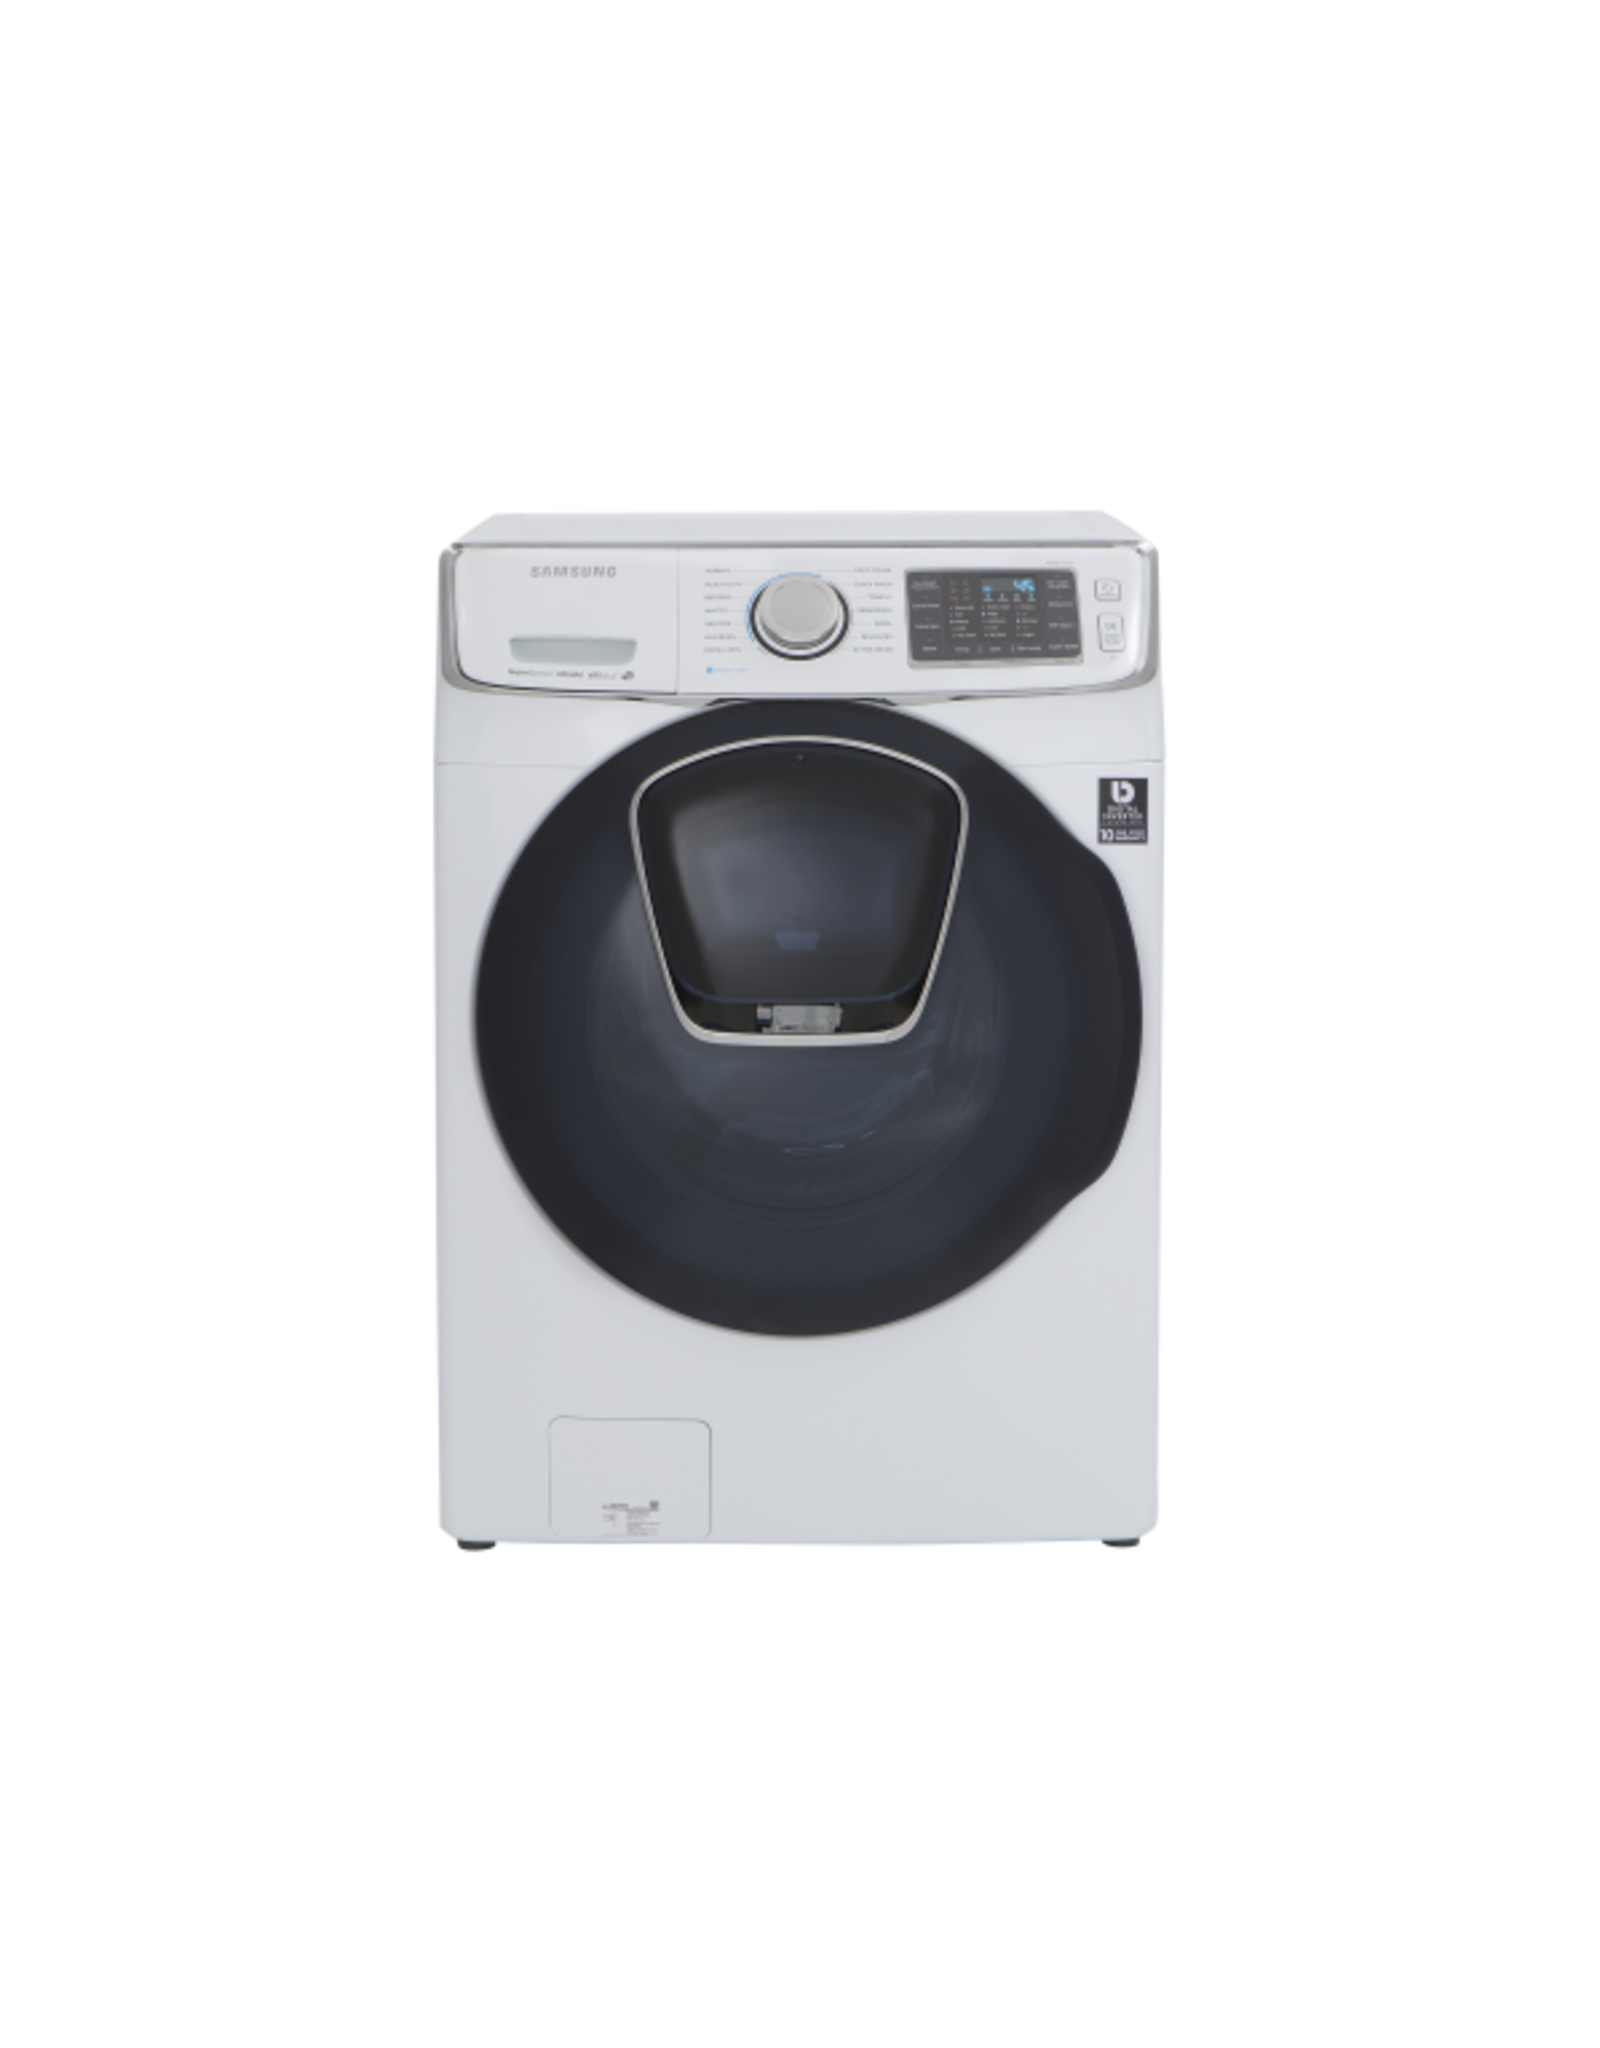 SAMSUNG WF45K6500AW 4.5 cu. ft. High-Efficiency Front Load Washer with Steam and AddWash Door in White, ENERGY STAR